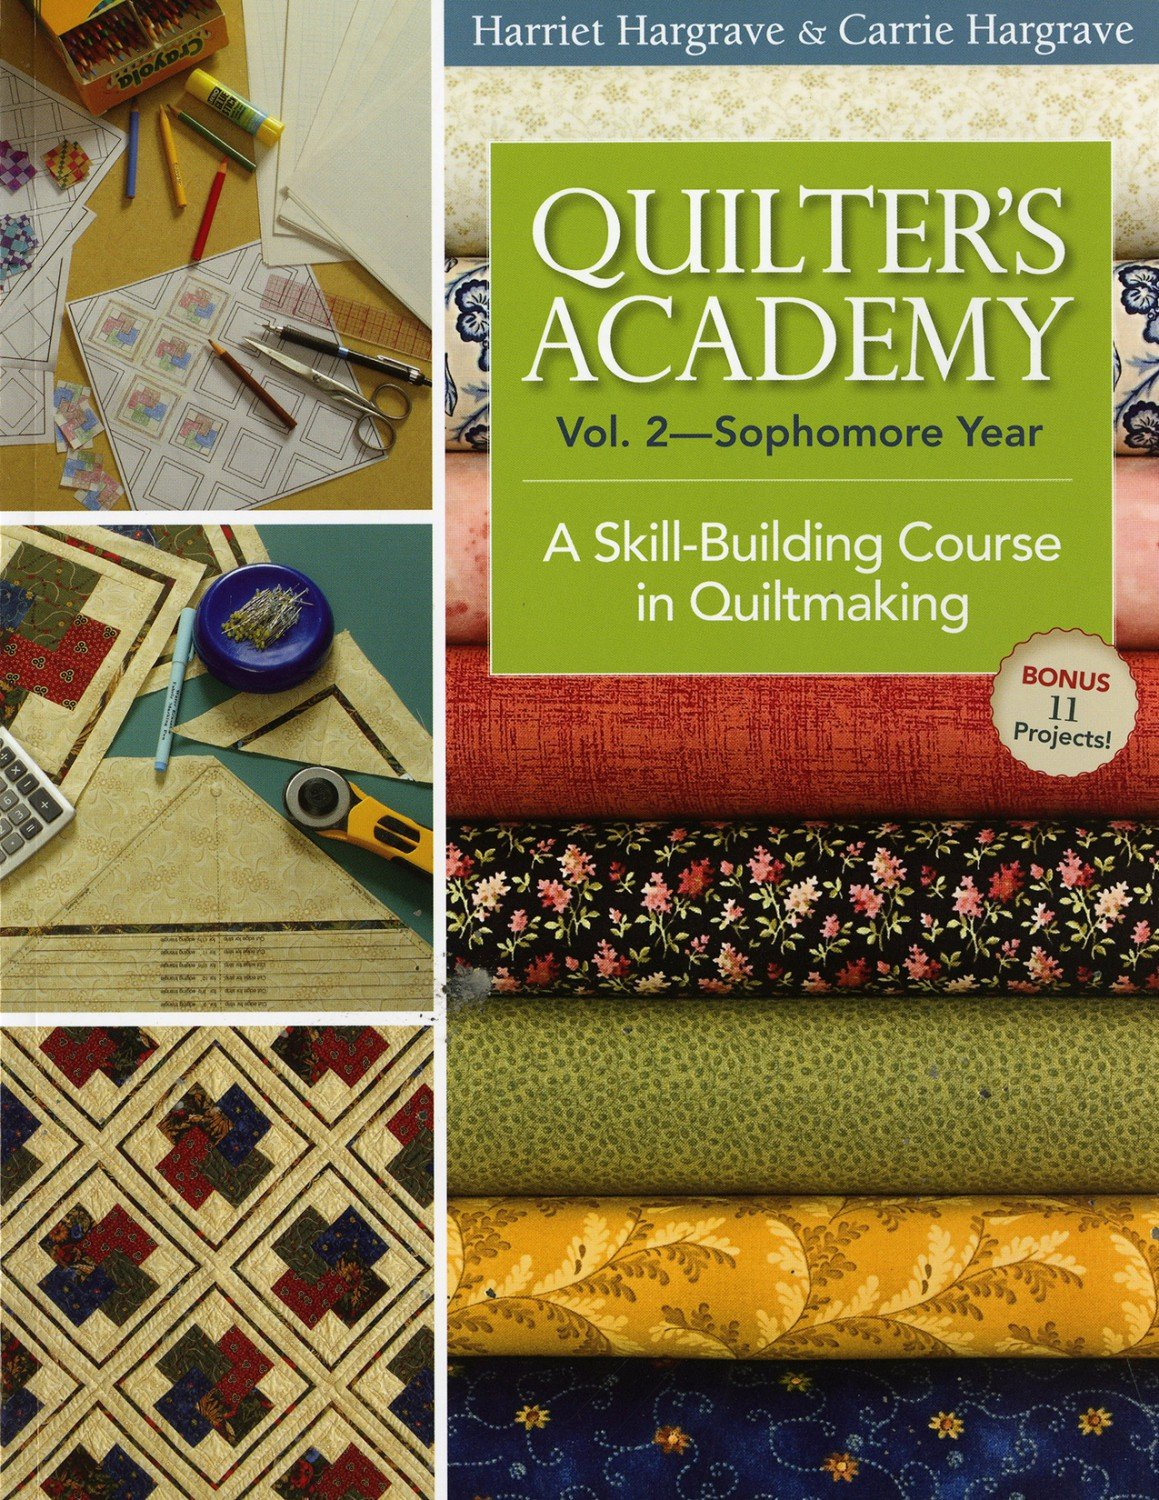 Quilters Academy  Vol. 2 Sophomore Year by Harriet and Carrie Hargrave